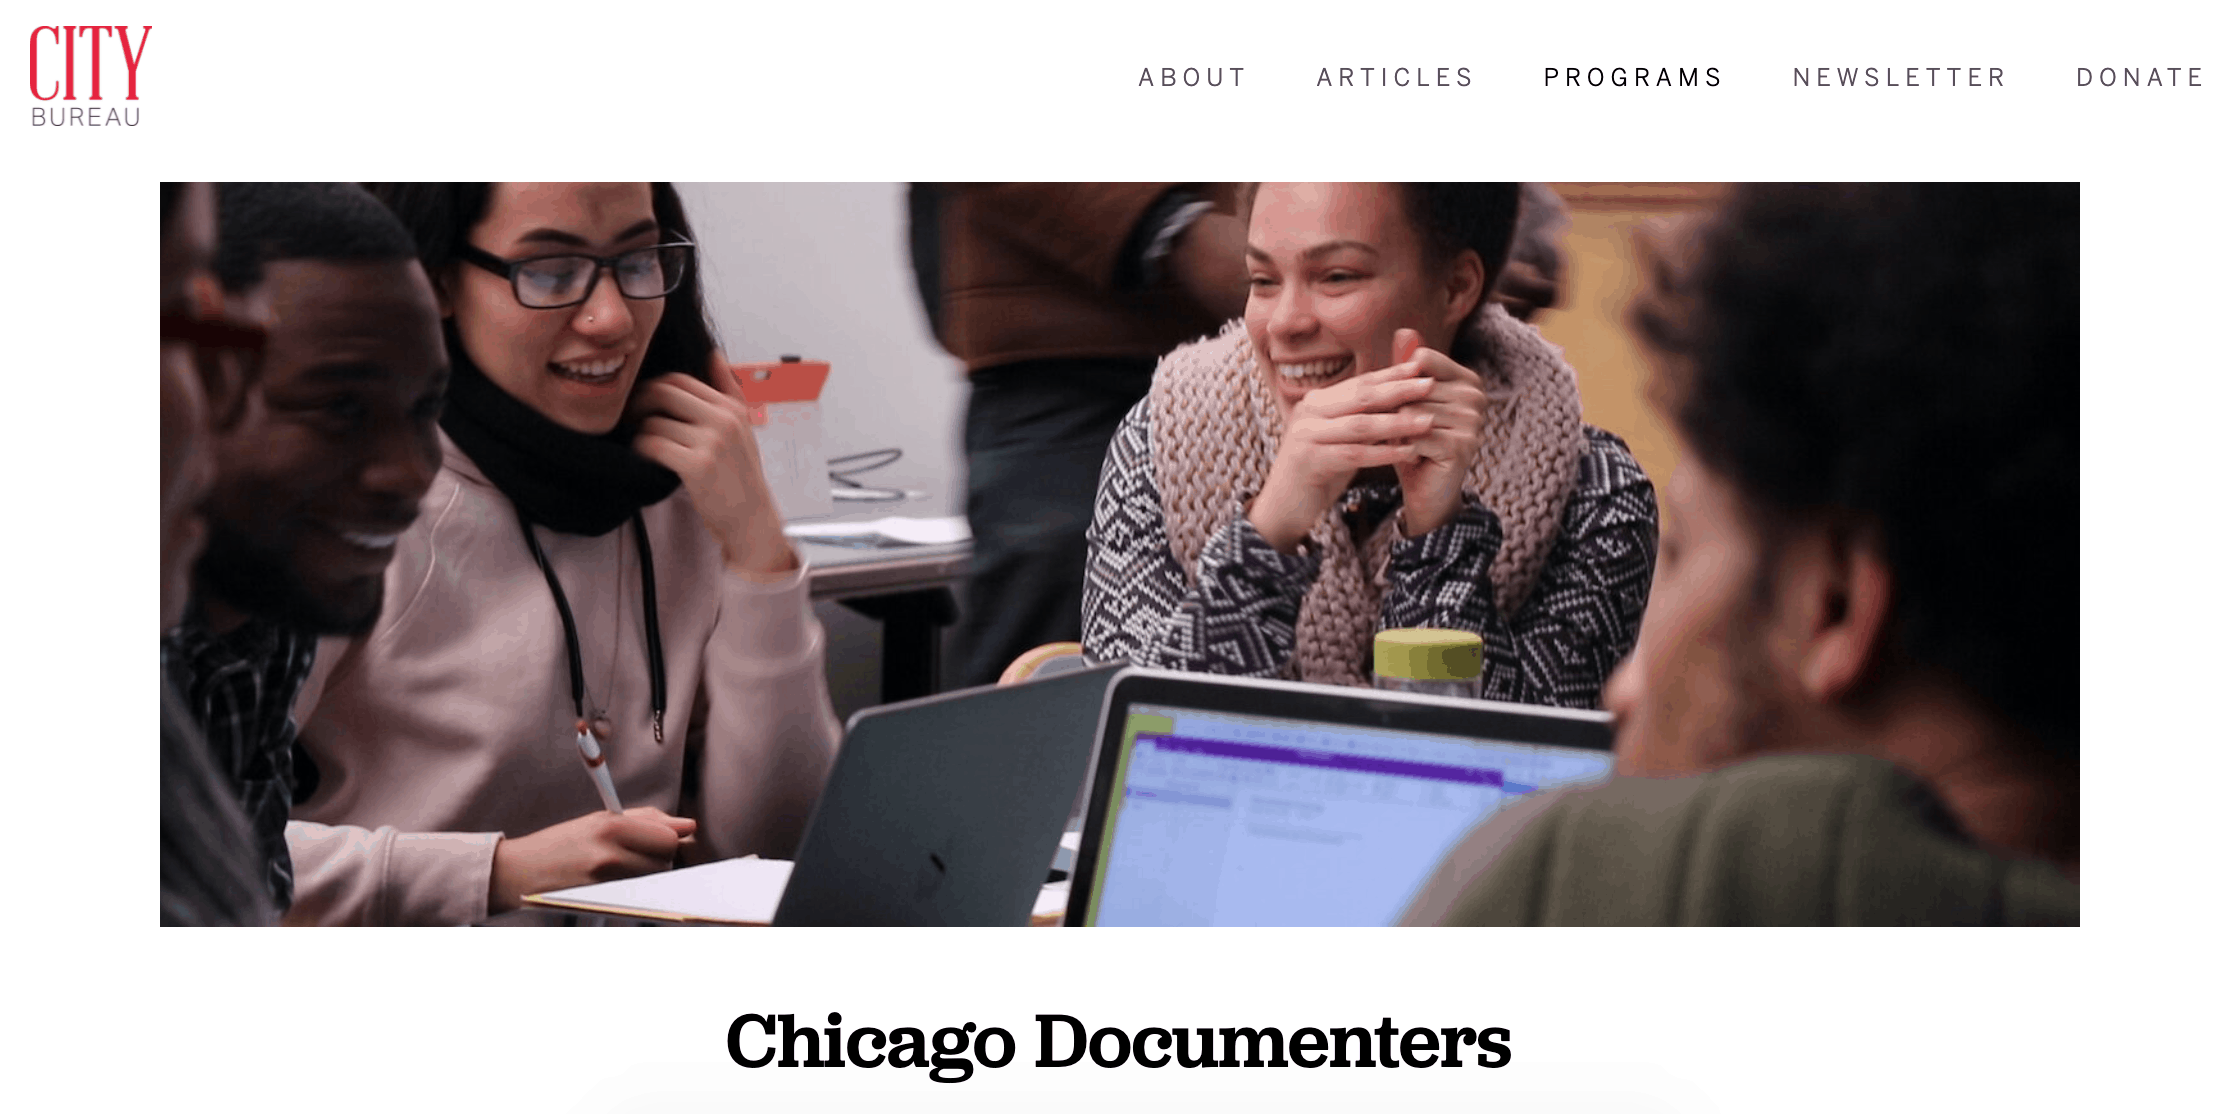 An image of citizen journalists in Chicago